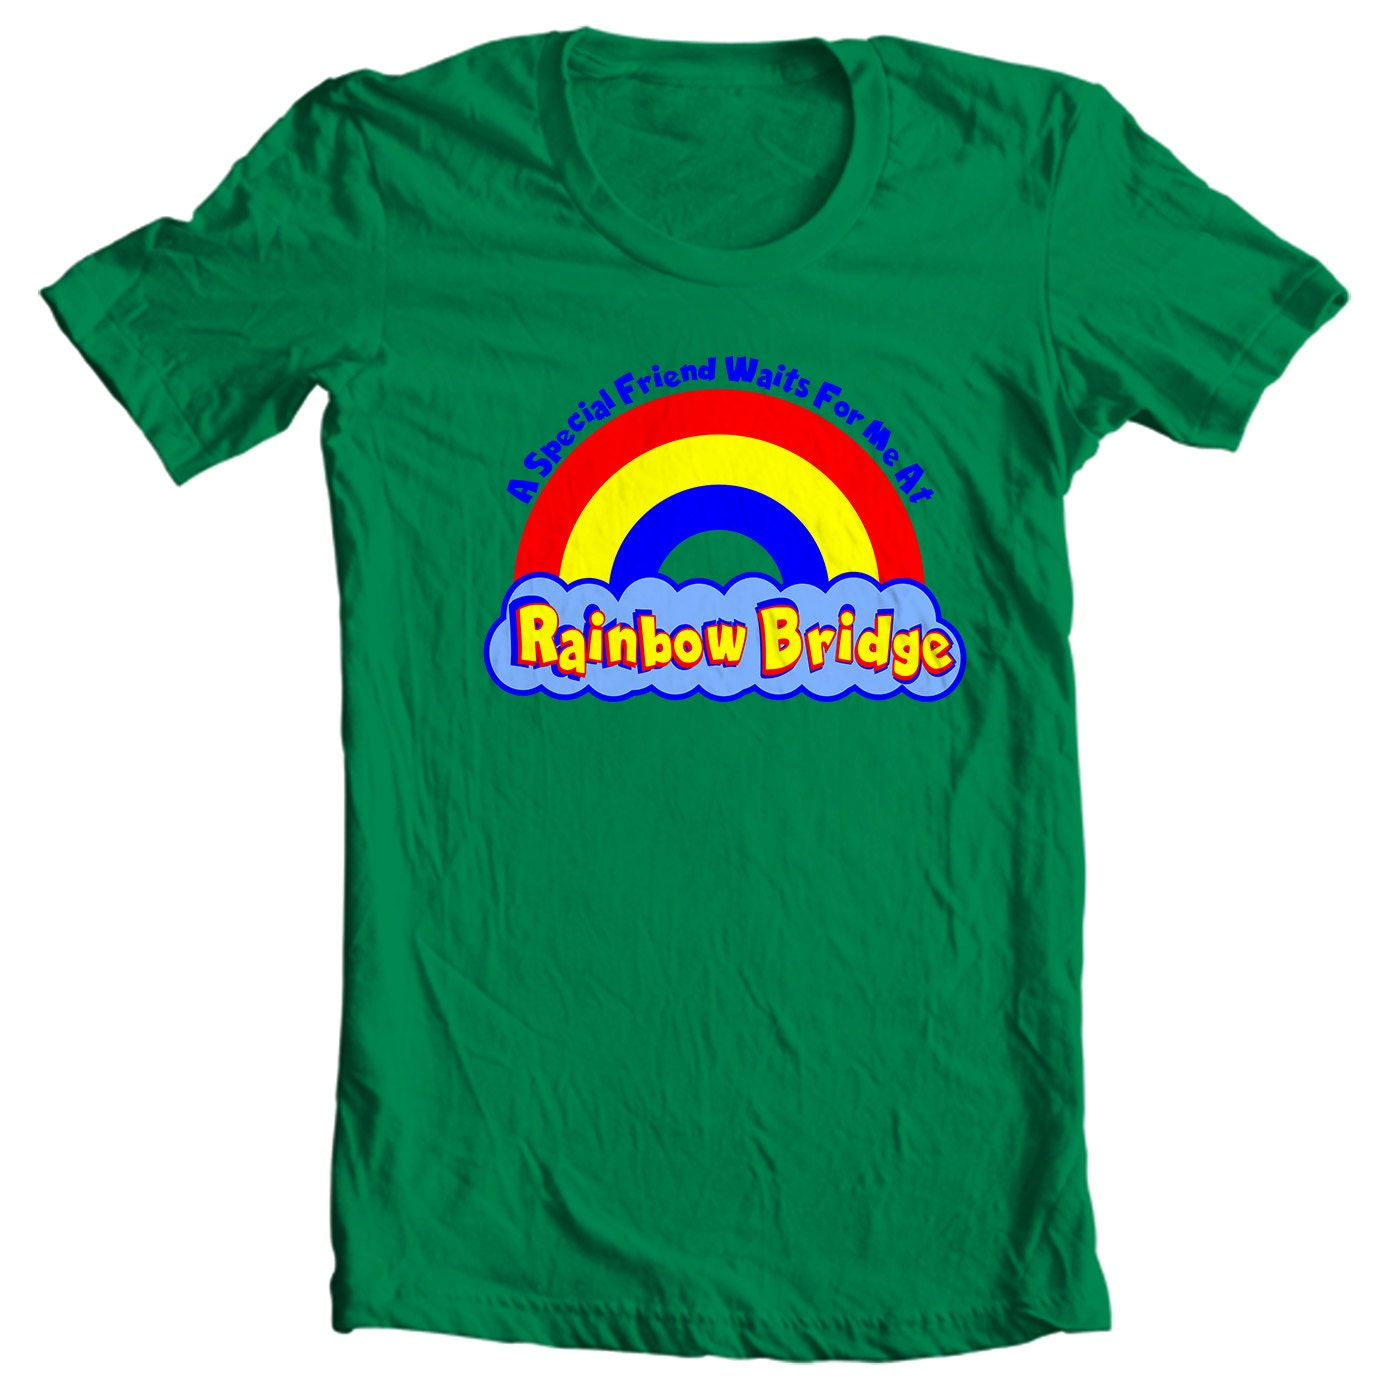 A Special Friend Waits For Me At Rainbow Bridge T-shirt - Only Shih Tzus